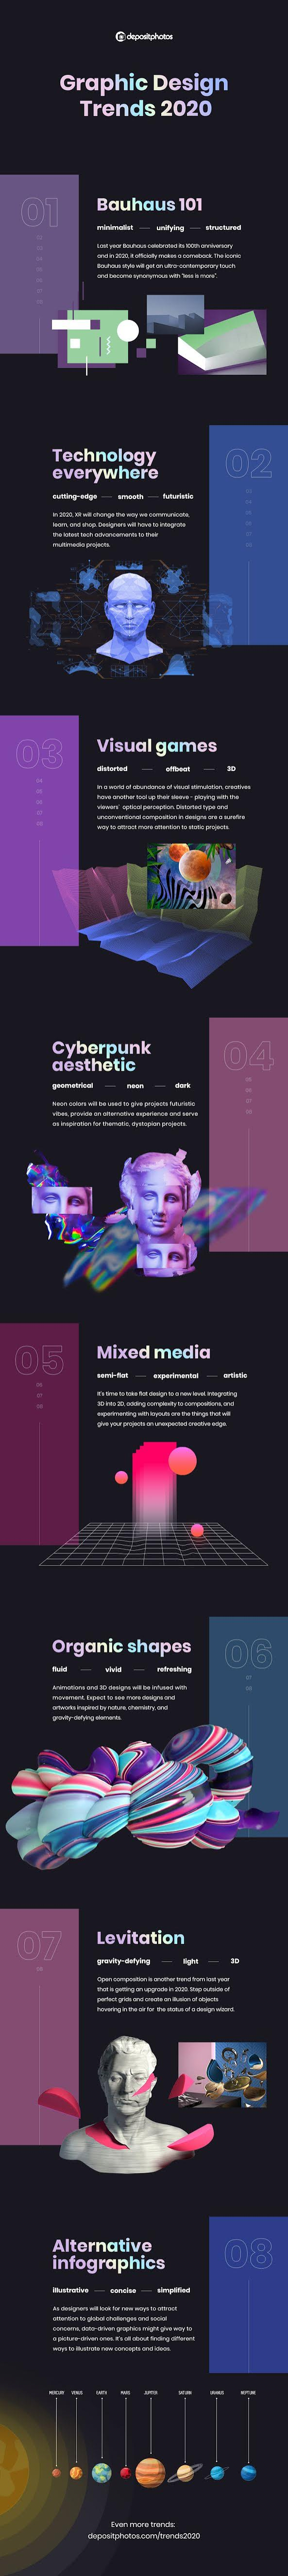 Graphic Design Trends for 2020 #Infographic